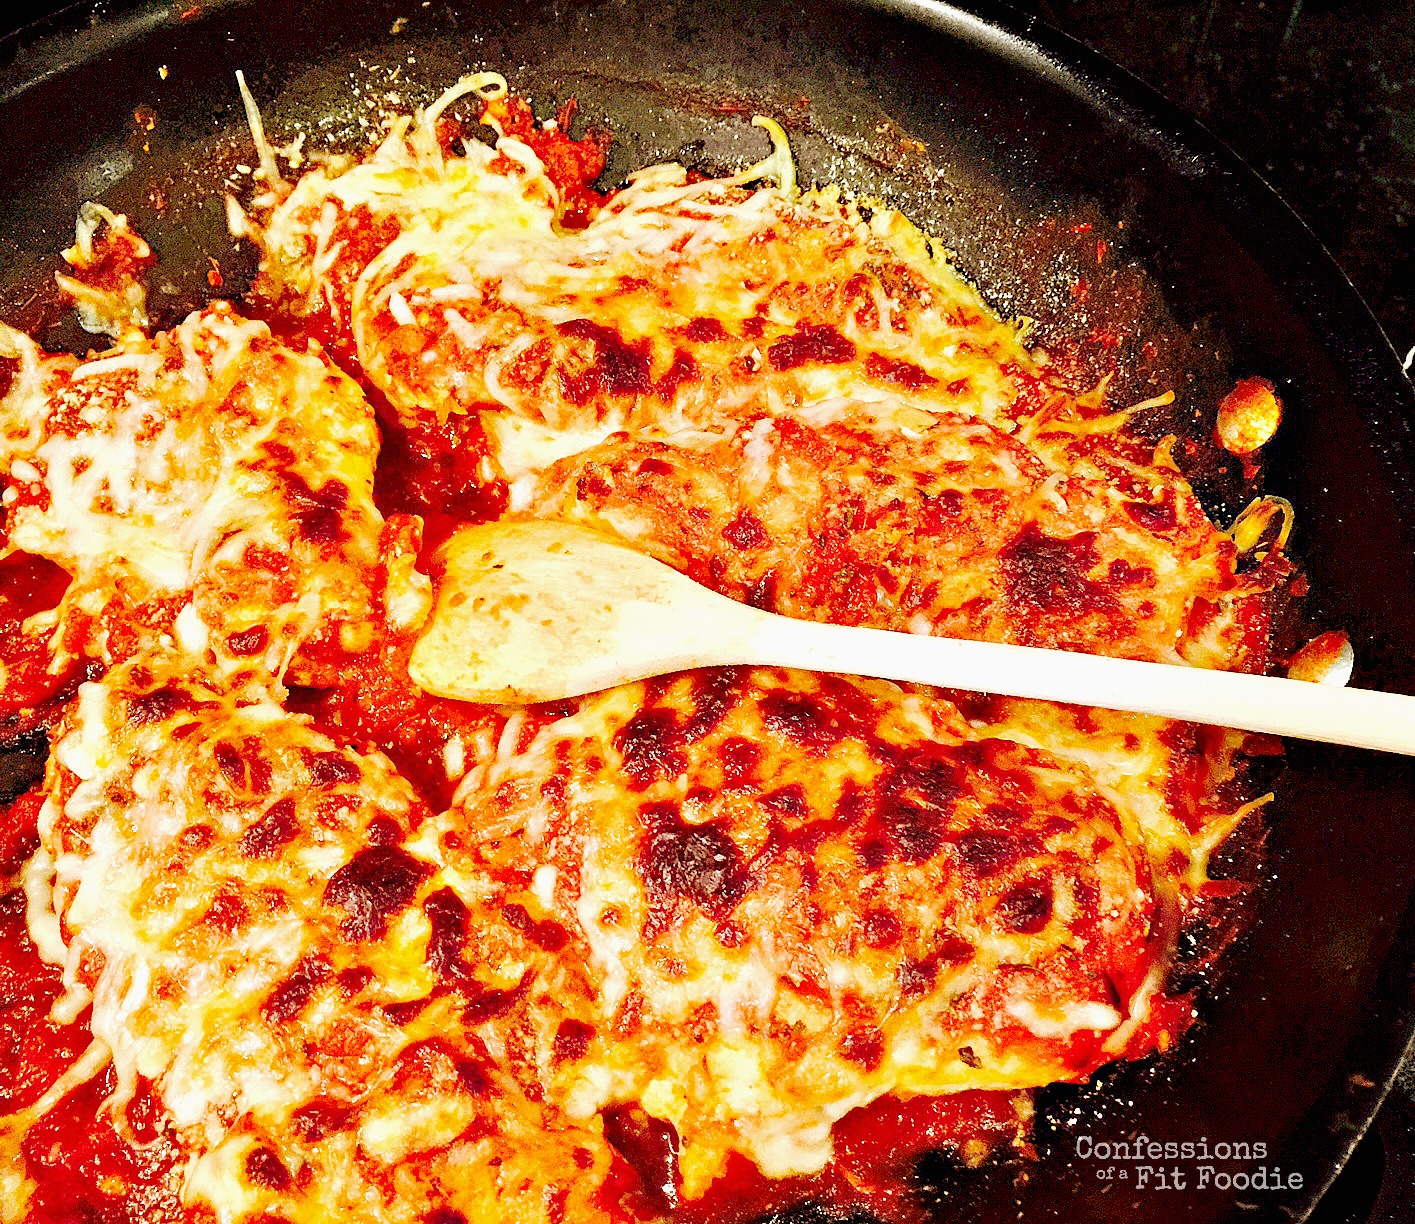 Italian Chicken Skillet {21 Day Fix} - Confessions of a Fit Foodie